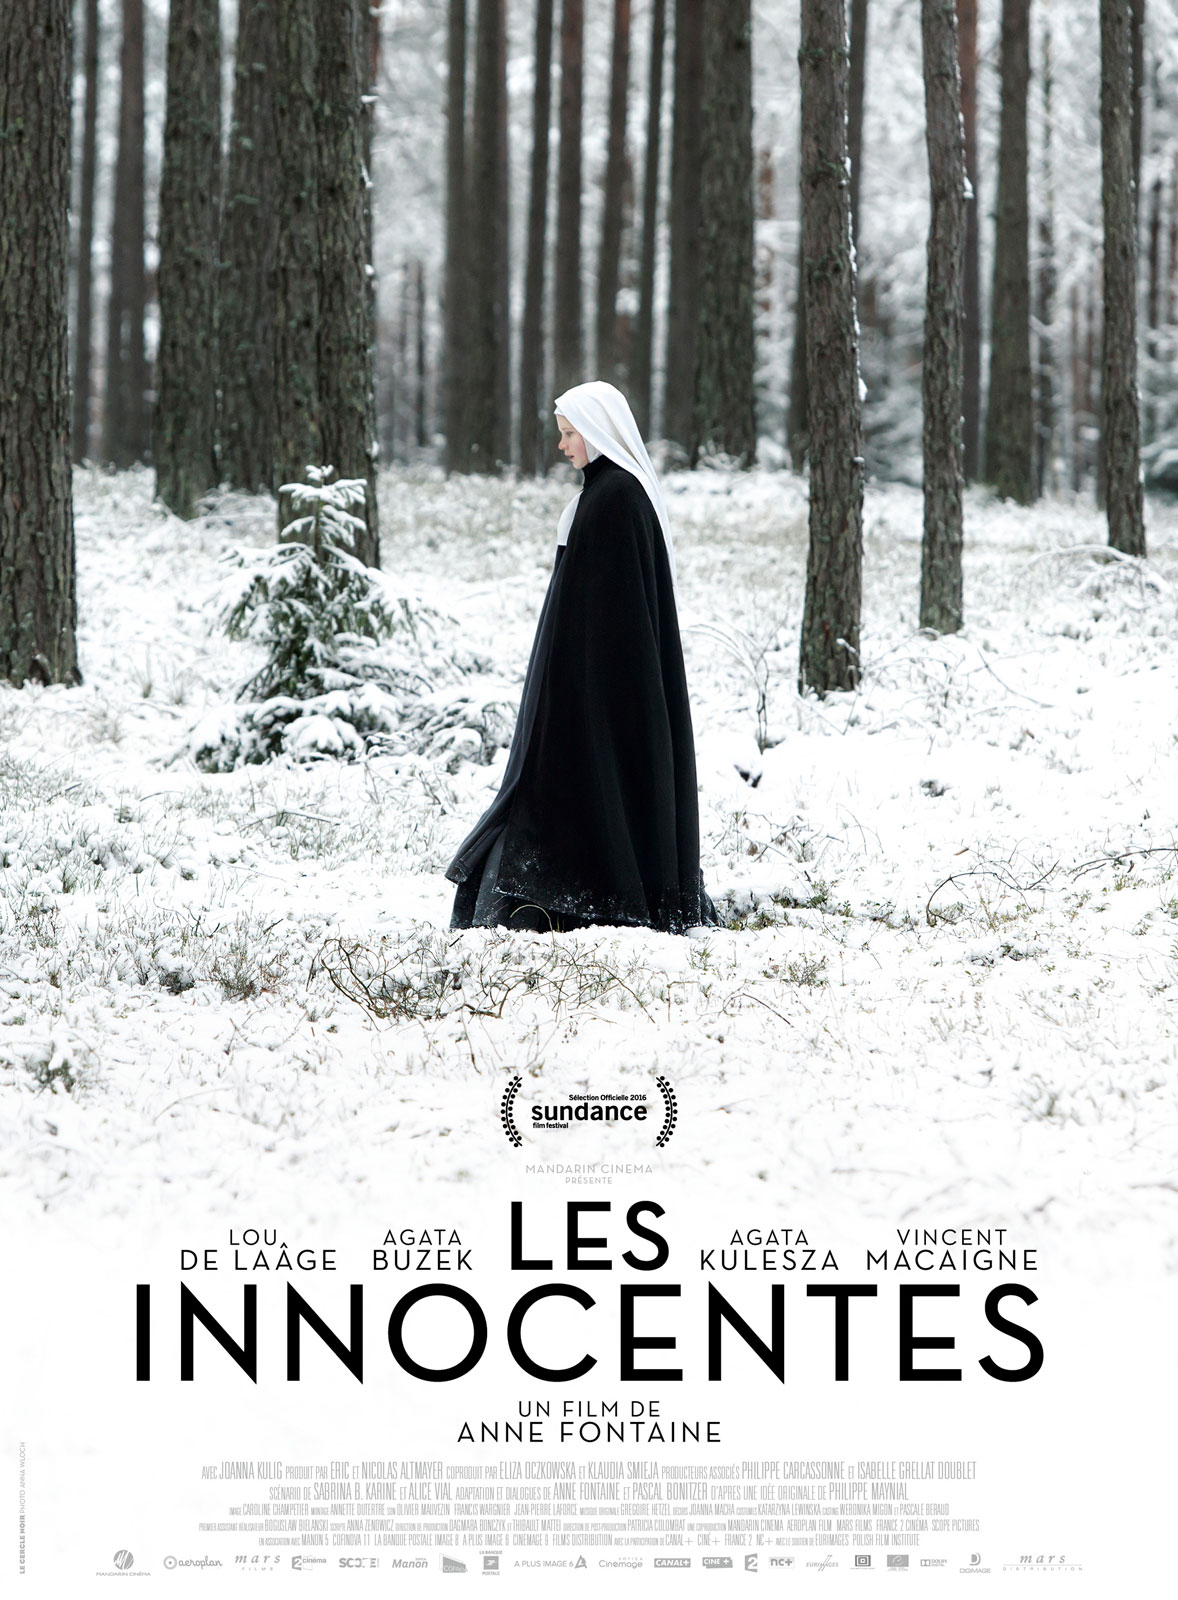 Les innocentes 2016 Download